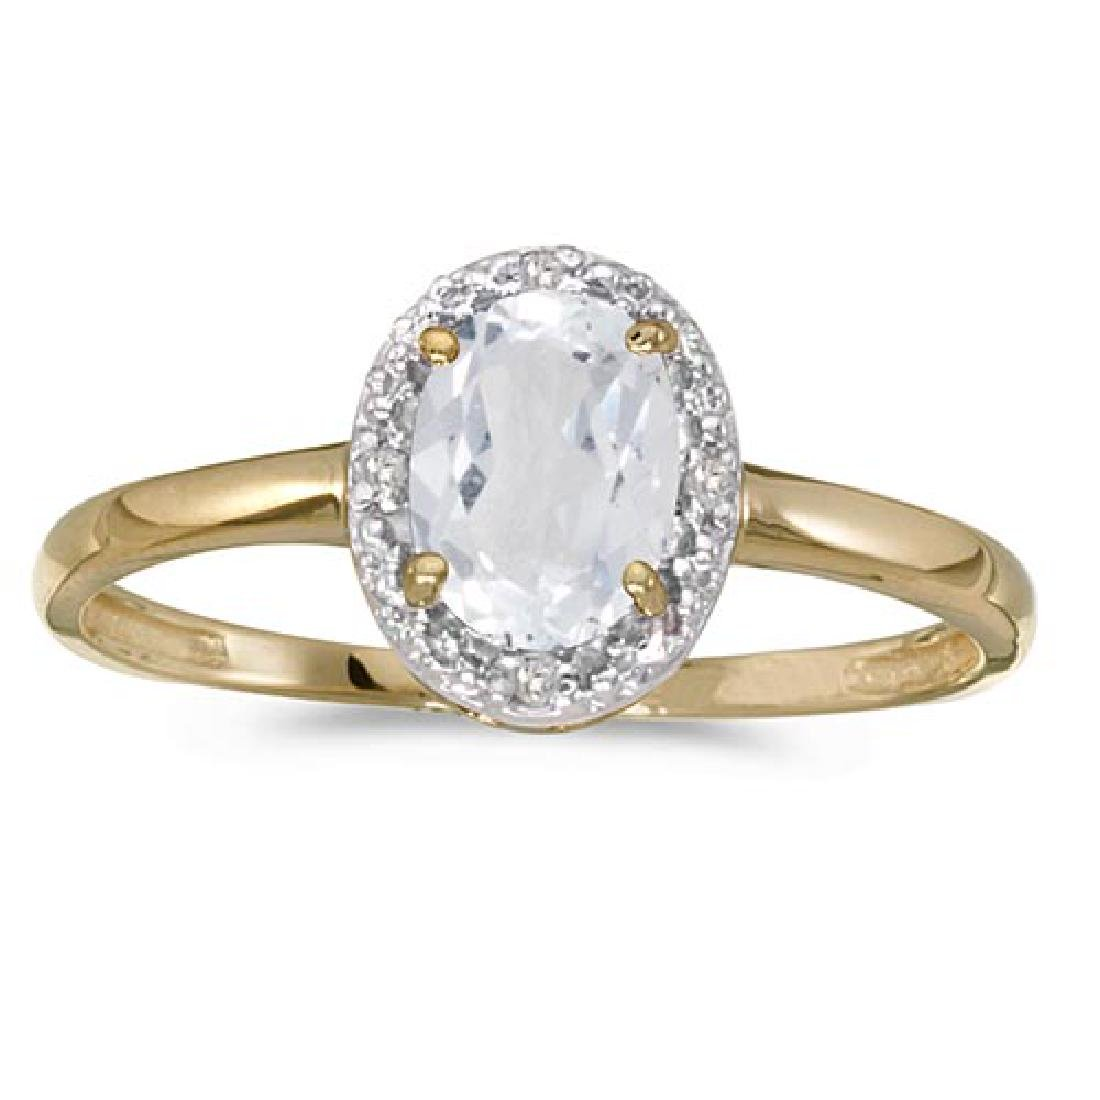 Certified 14k Yellow Gold Oval White Topaz And Diamond